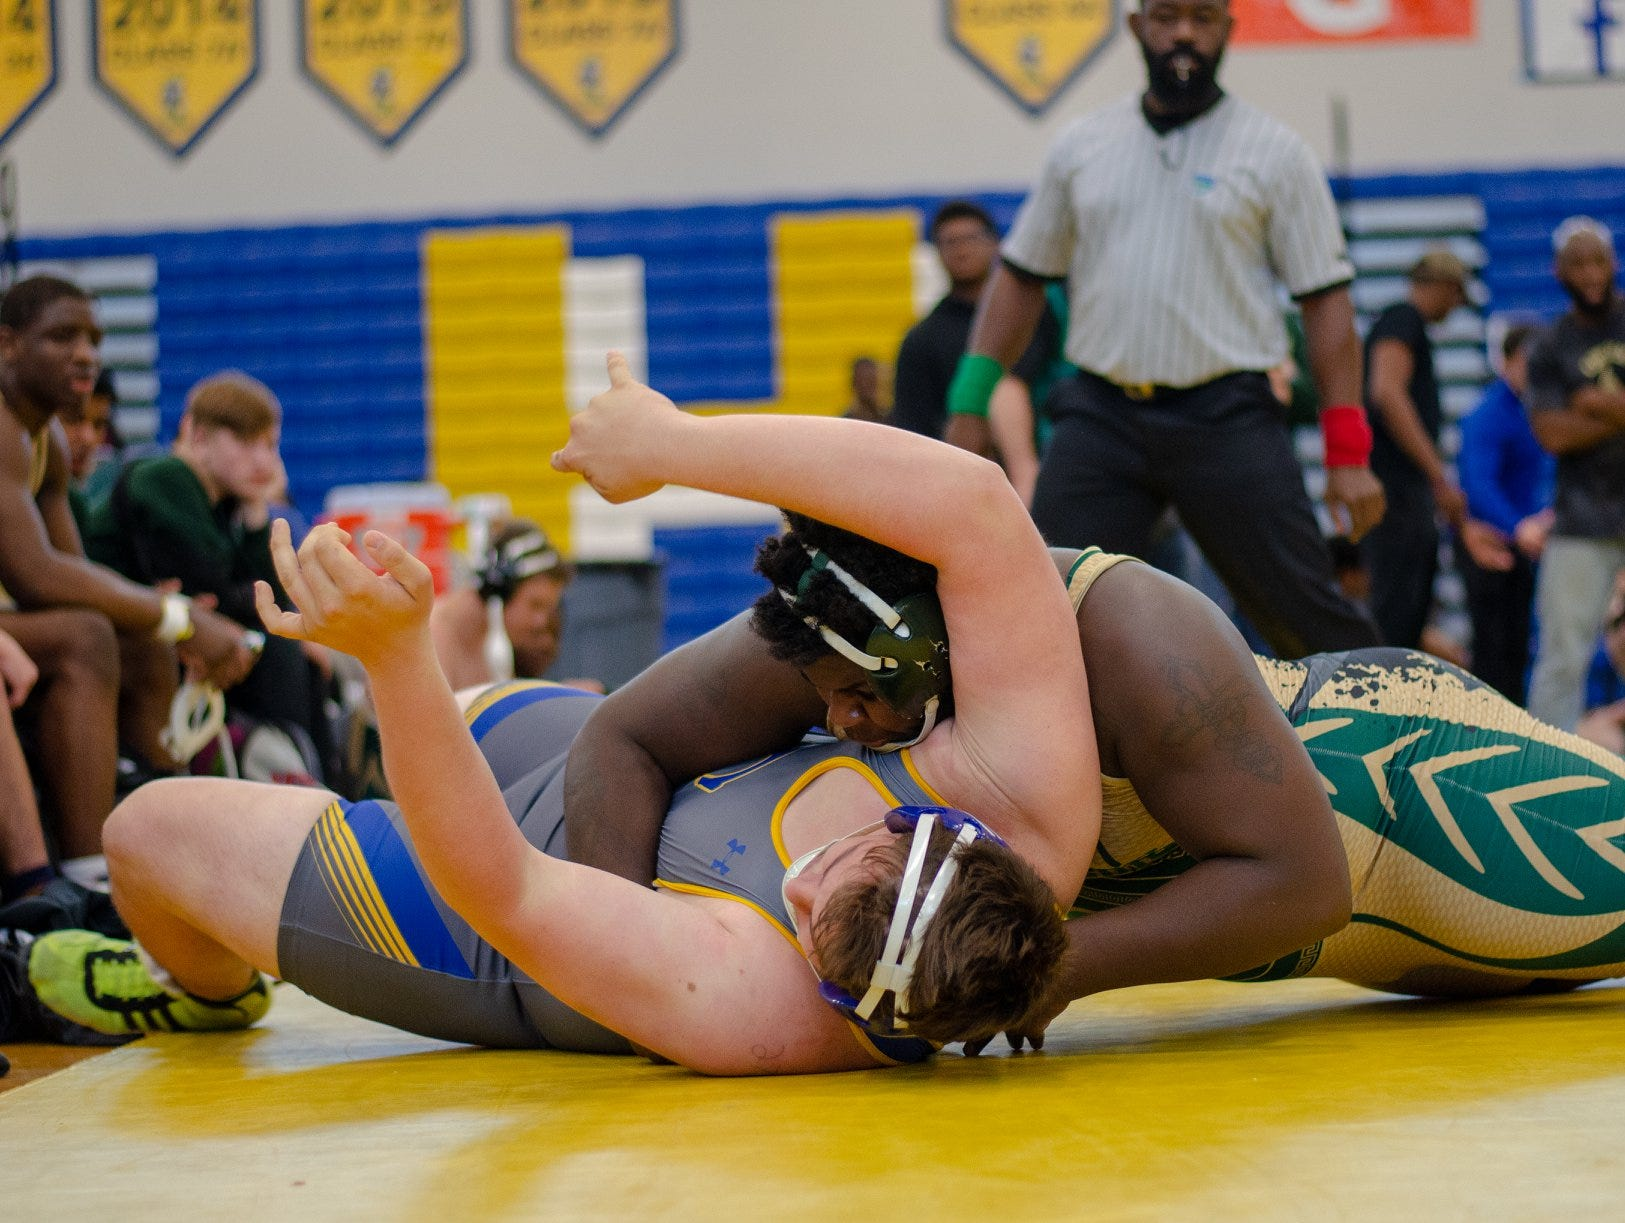 Lincoln's J.T. Rivers takes down his opponent as Lincoln's wrestling team finished in the state semifinals at the FHSAA Wrestling Dual State Championships in Kissimmee.